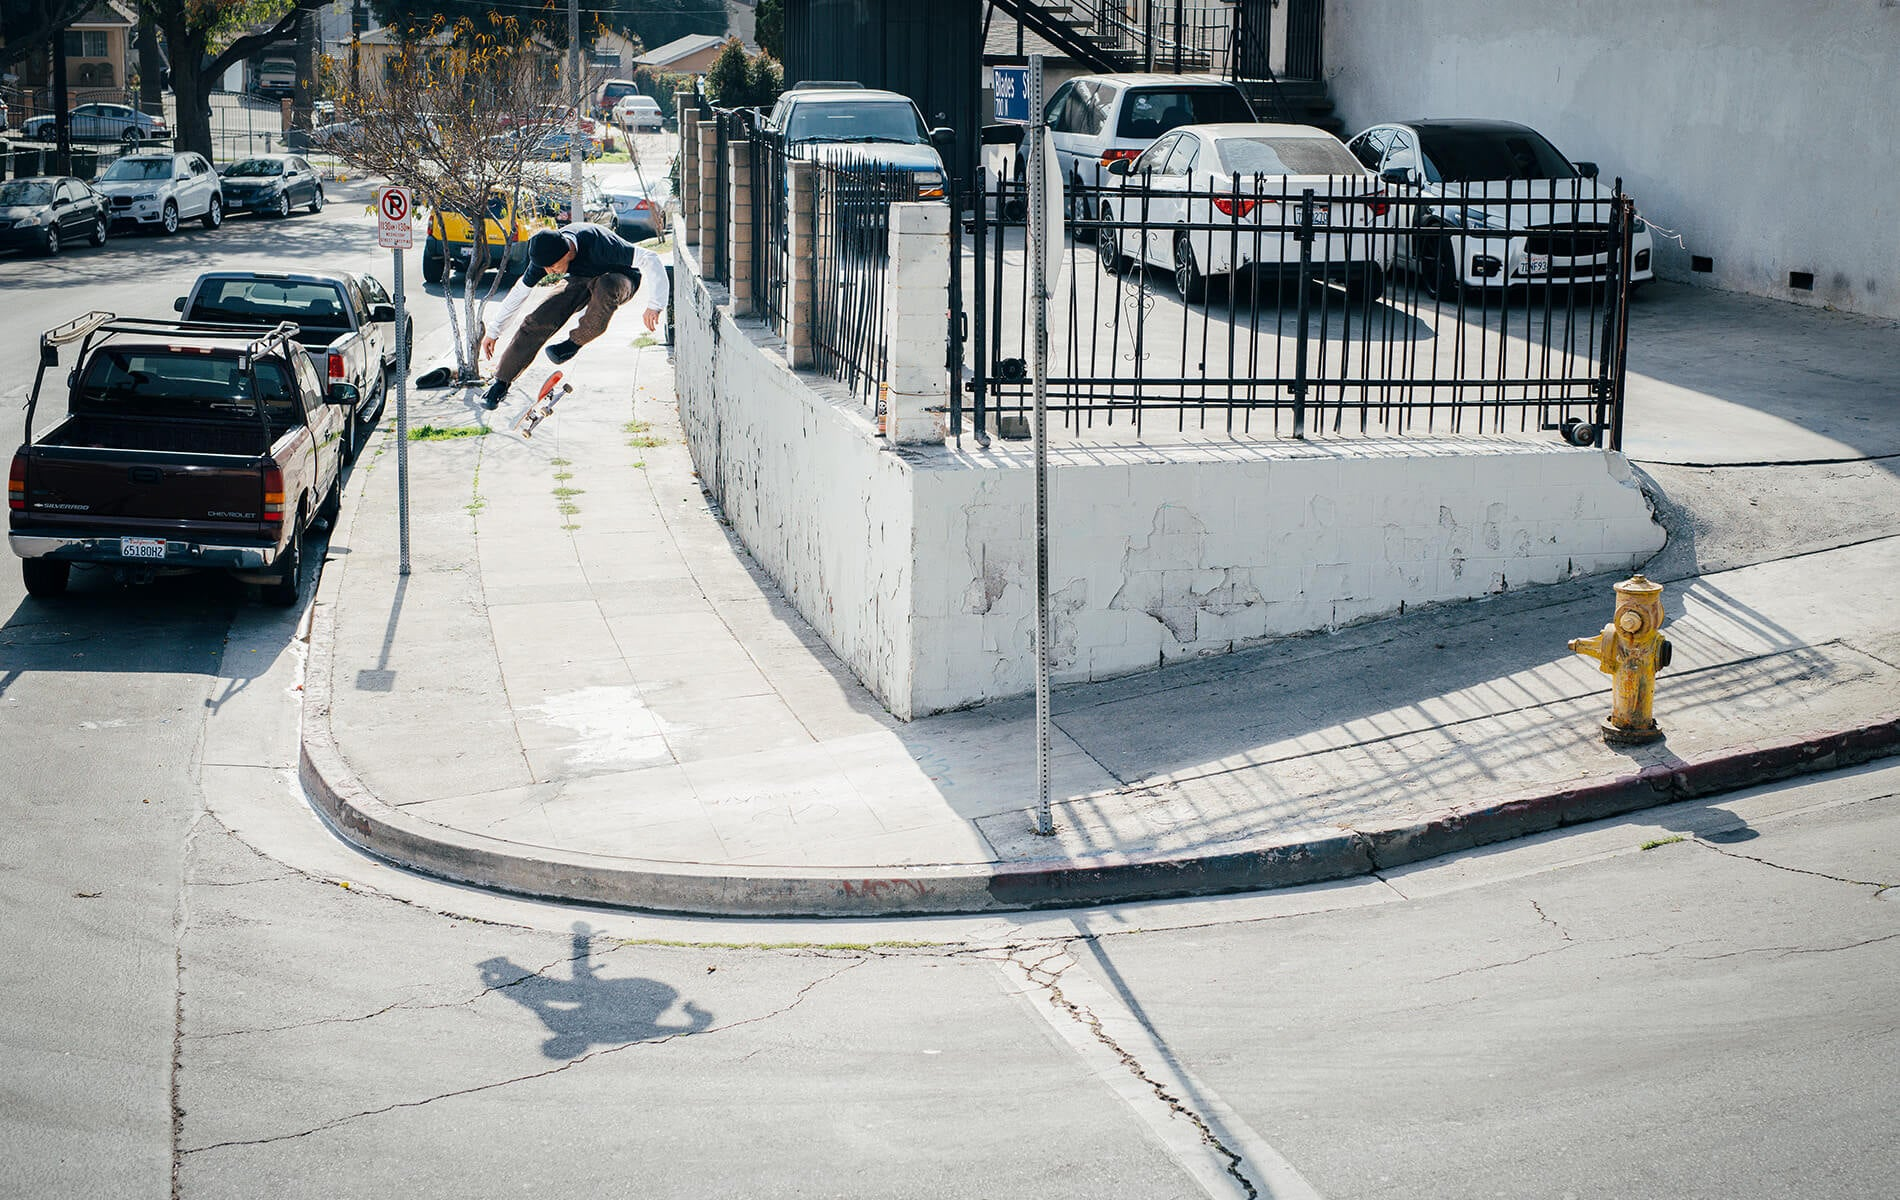 Globe Skate Shoes Collection   Aaron Kim Surplus ft. Wolverine Leathers